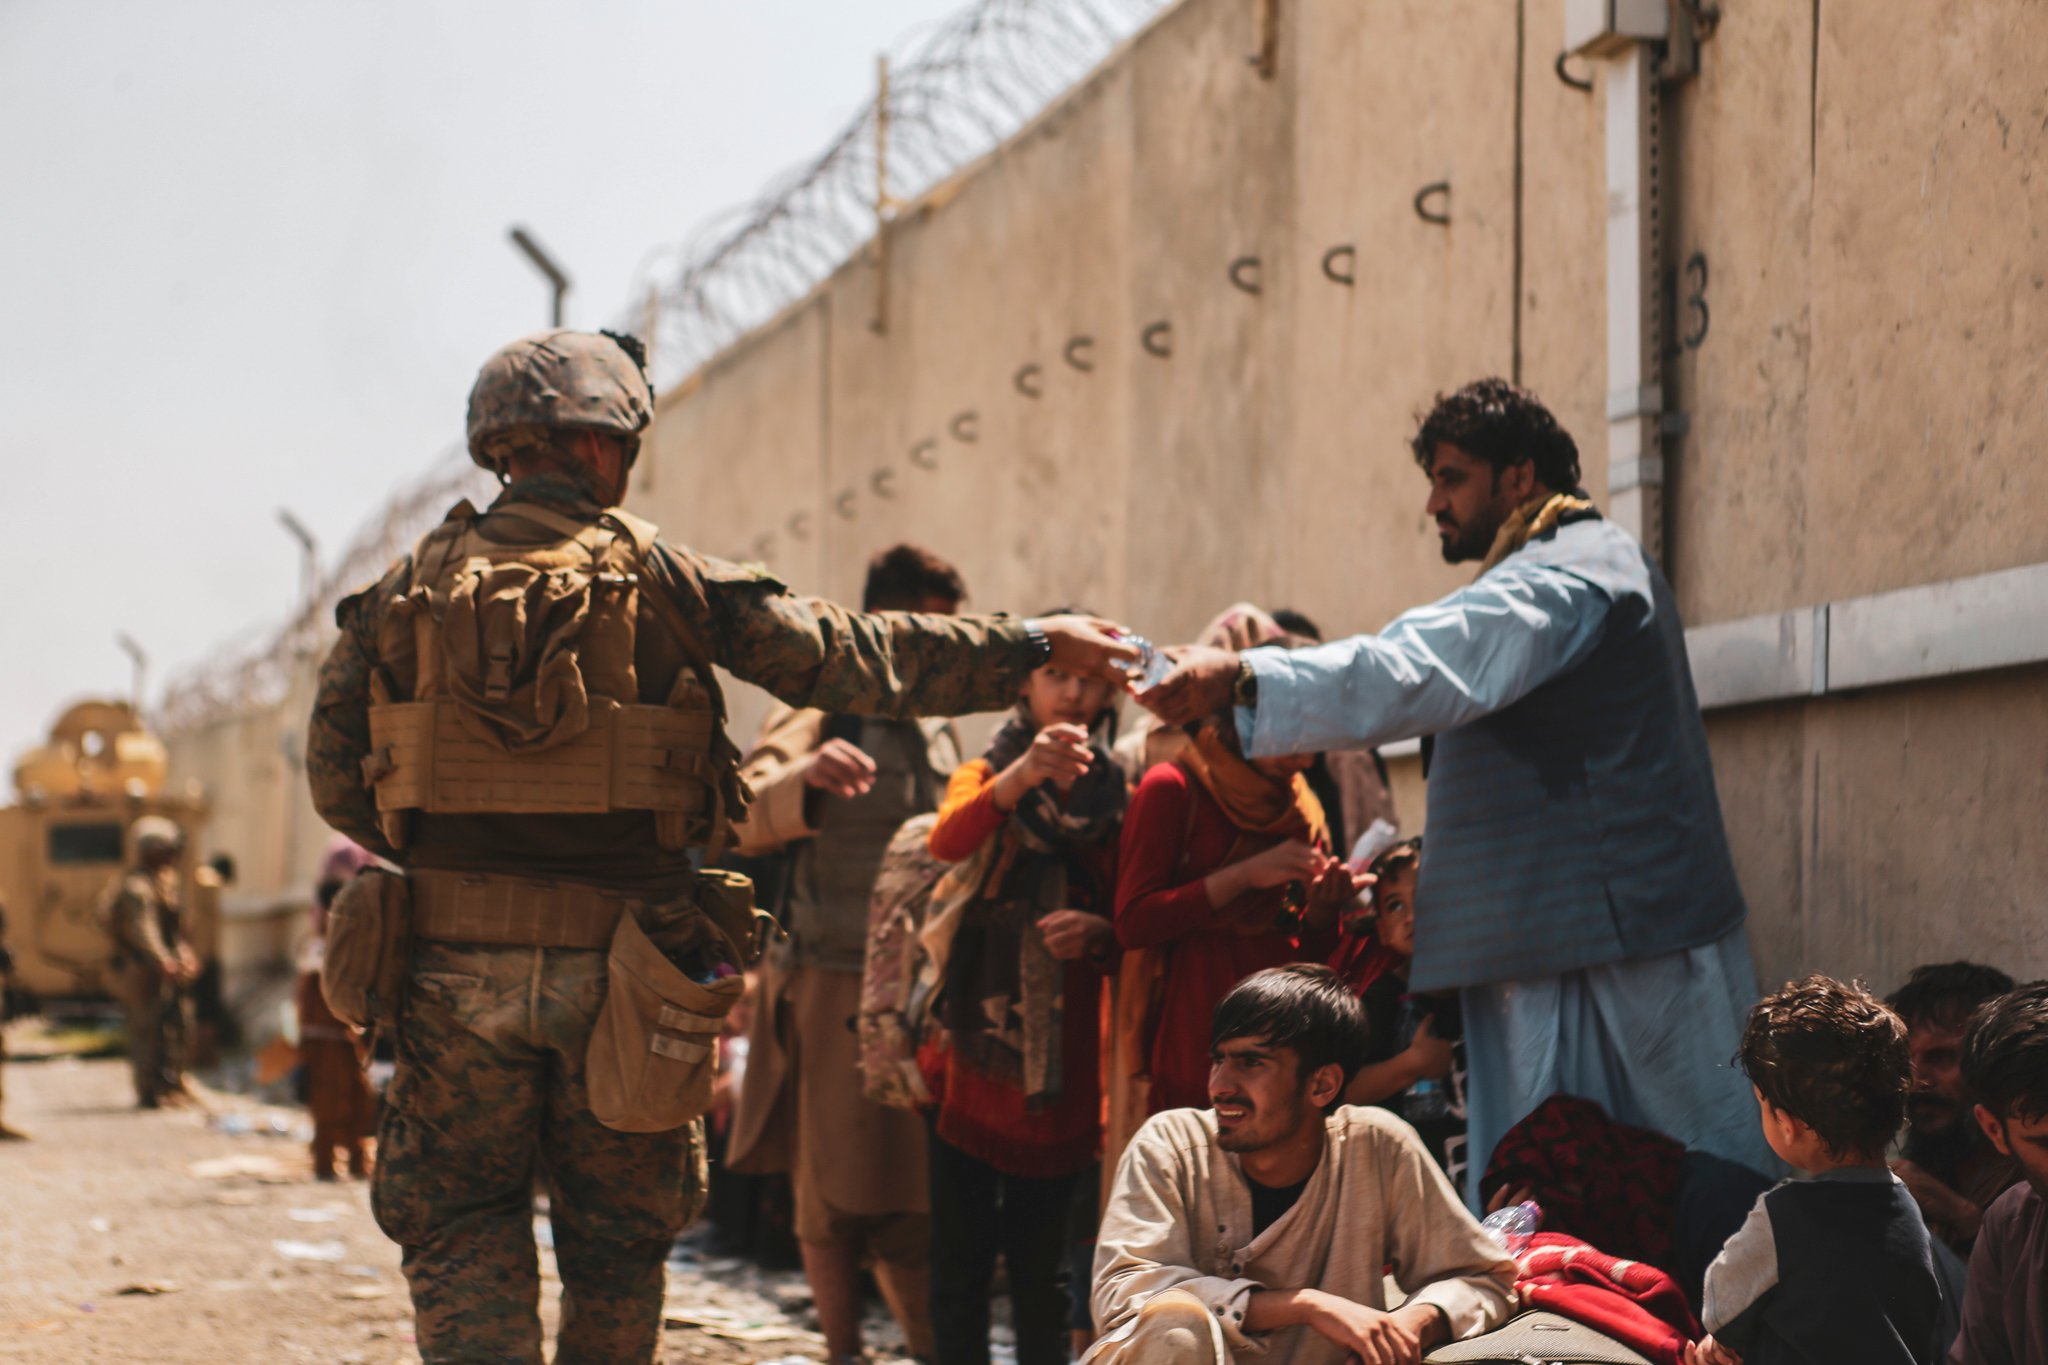 KABUL, AFGHANISTAN - AUGUST 21: In this handout provided by the U.S. Marine Corps, a Marine with the 24th Marine Expeditionary unit (MEU) passes out water to evacuees during the evacuation at Hamid Karzai International Airport during the evacuation on August 21, 2021 in Kabul, Afghanistan. The U.S. military is assisting in the evacuation effort. (Photo by Isaiah Campbell/U.S. Marine Corps via Getty Images)